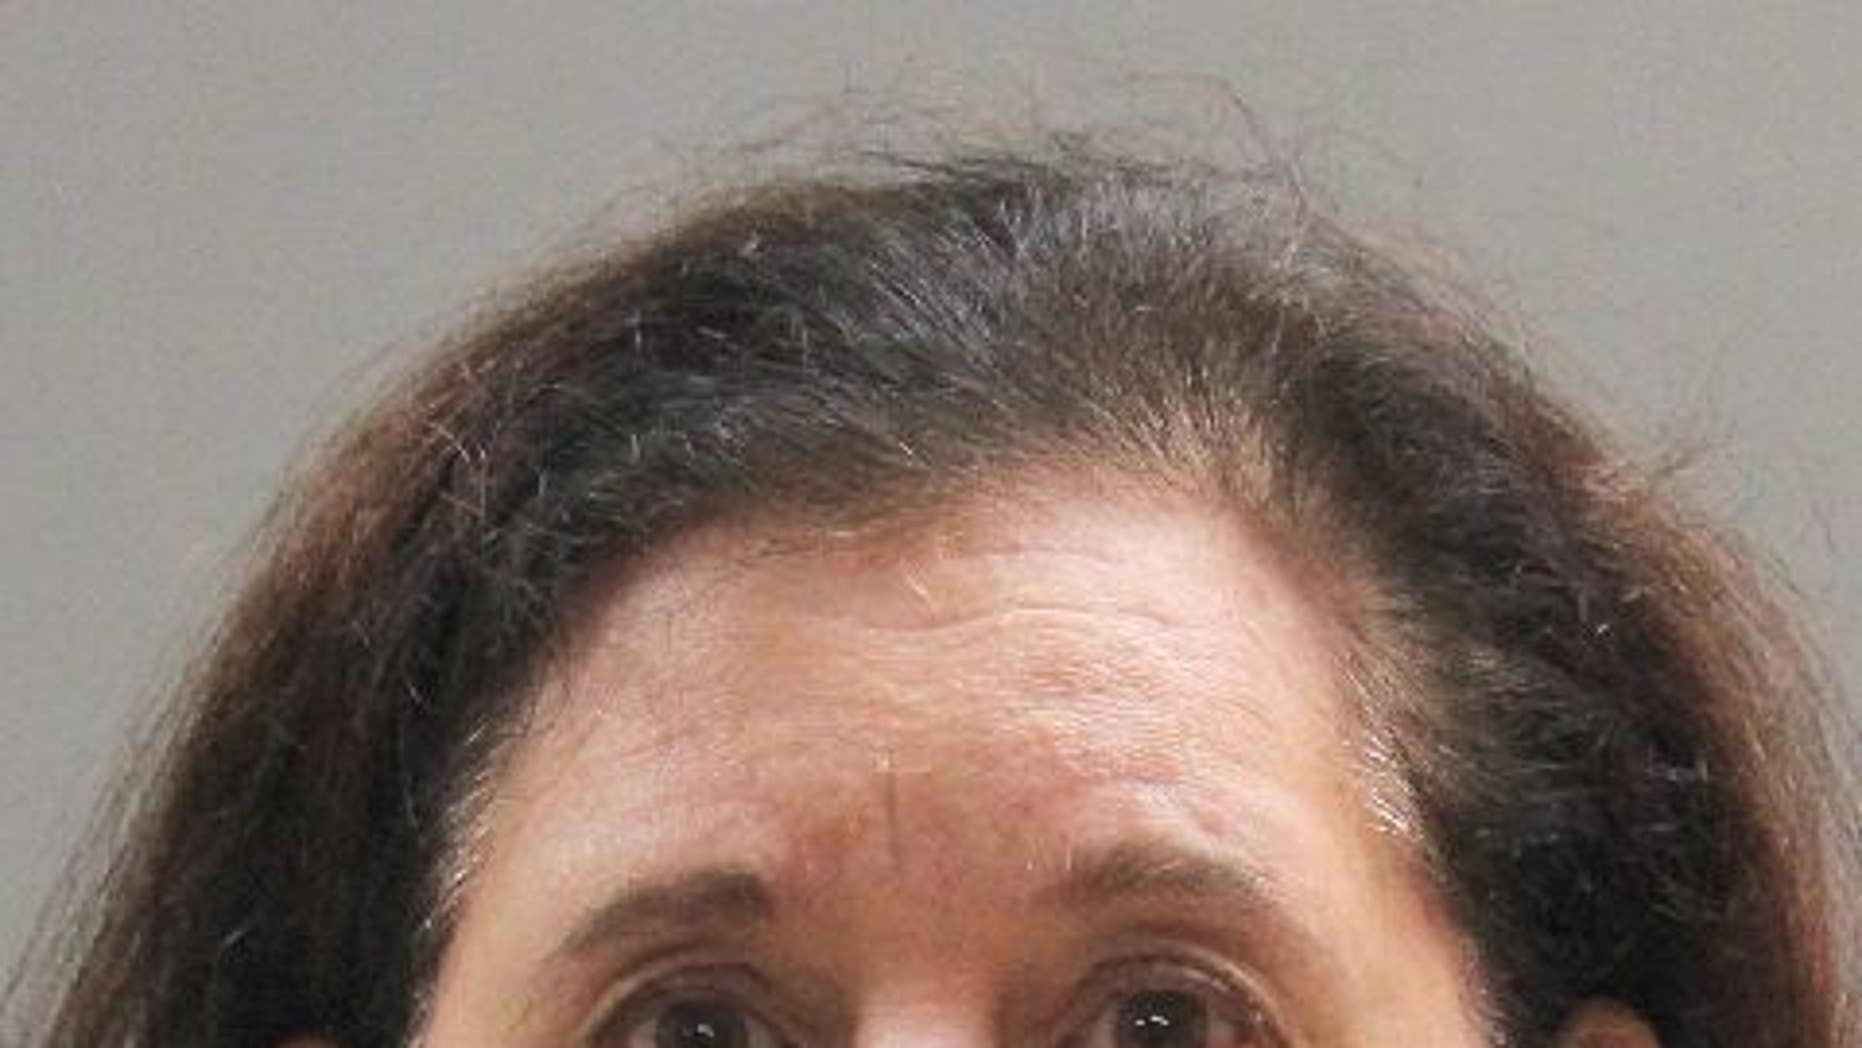 Faye Doomchin, 66, is accused of stabbing a British tourist to death in her Long Island home.